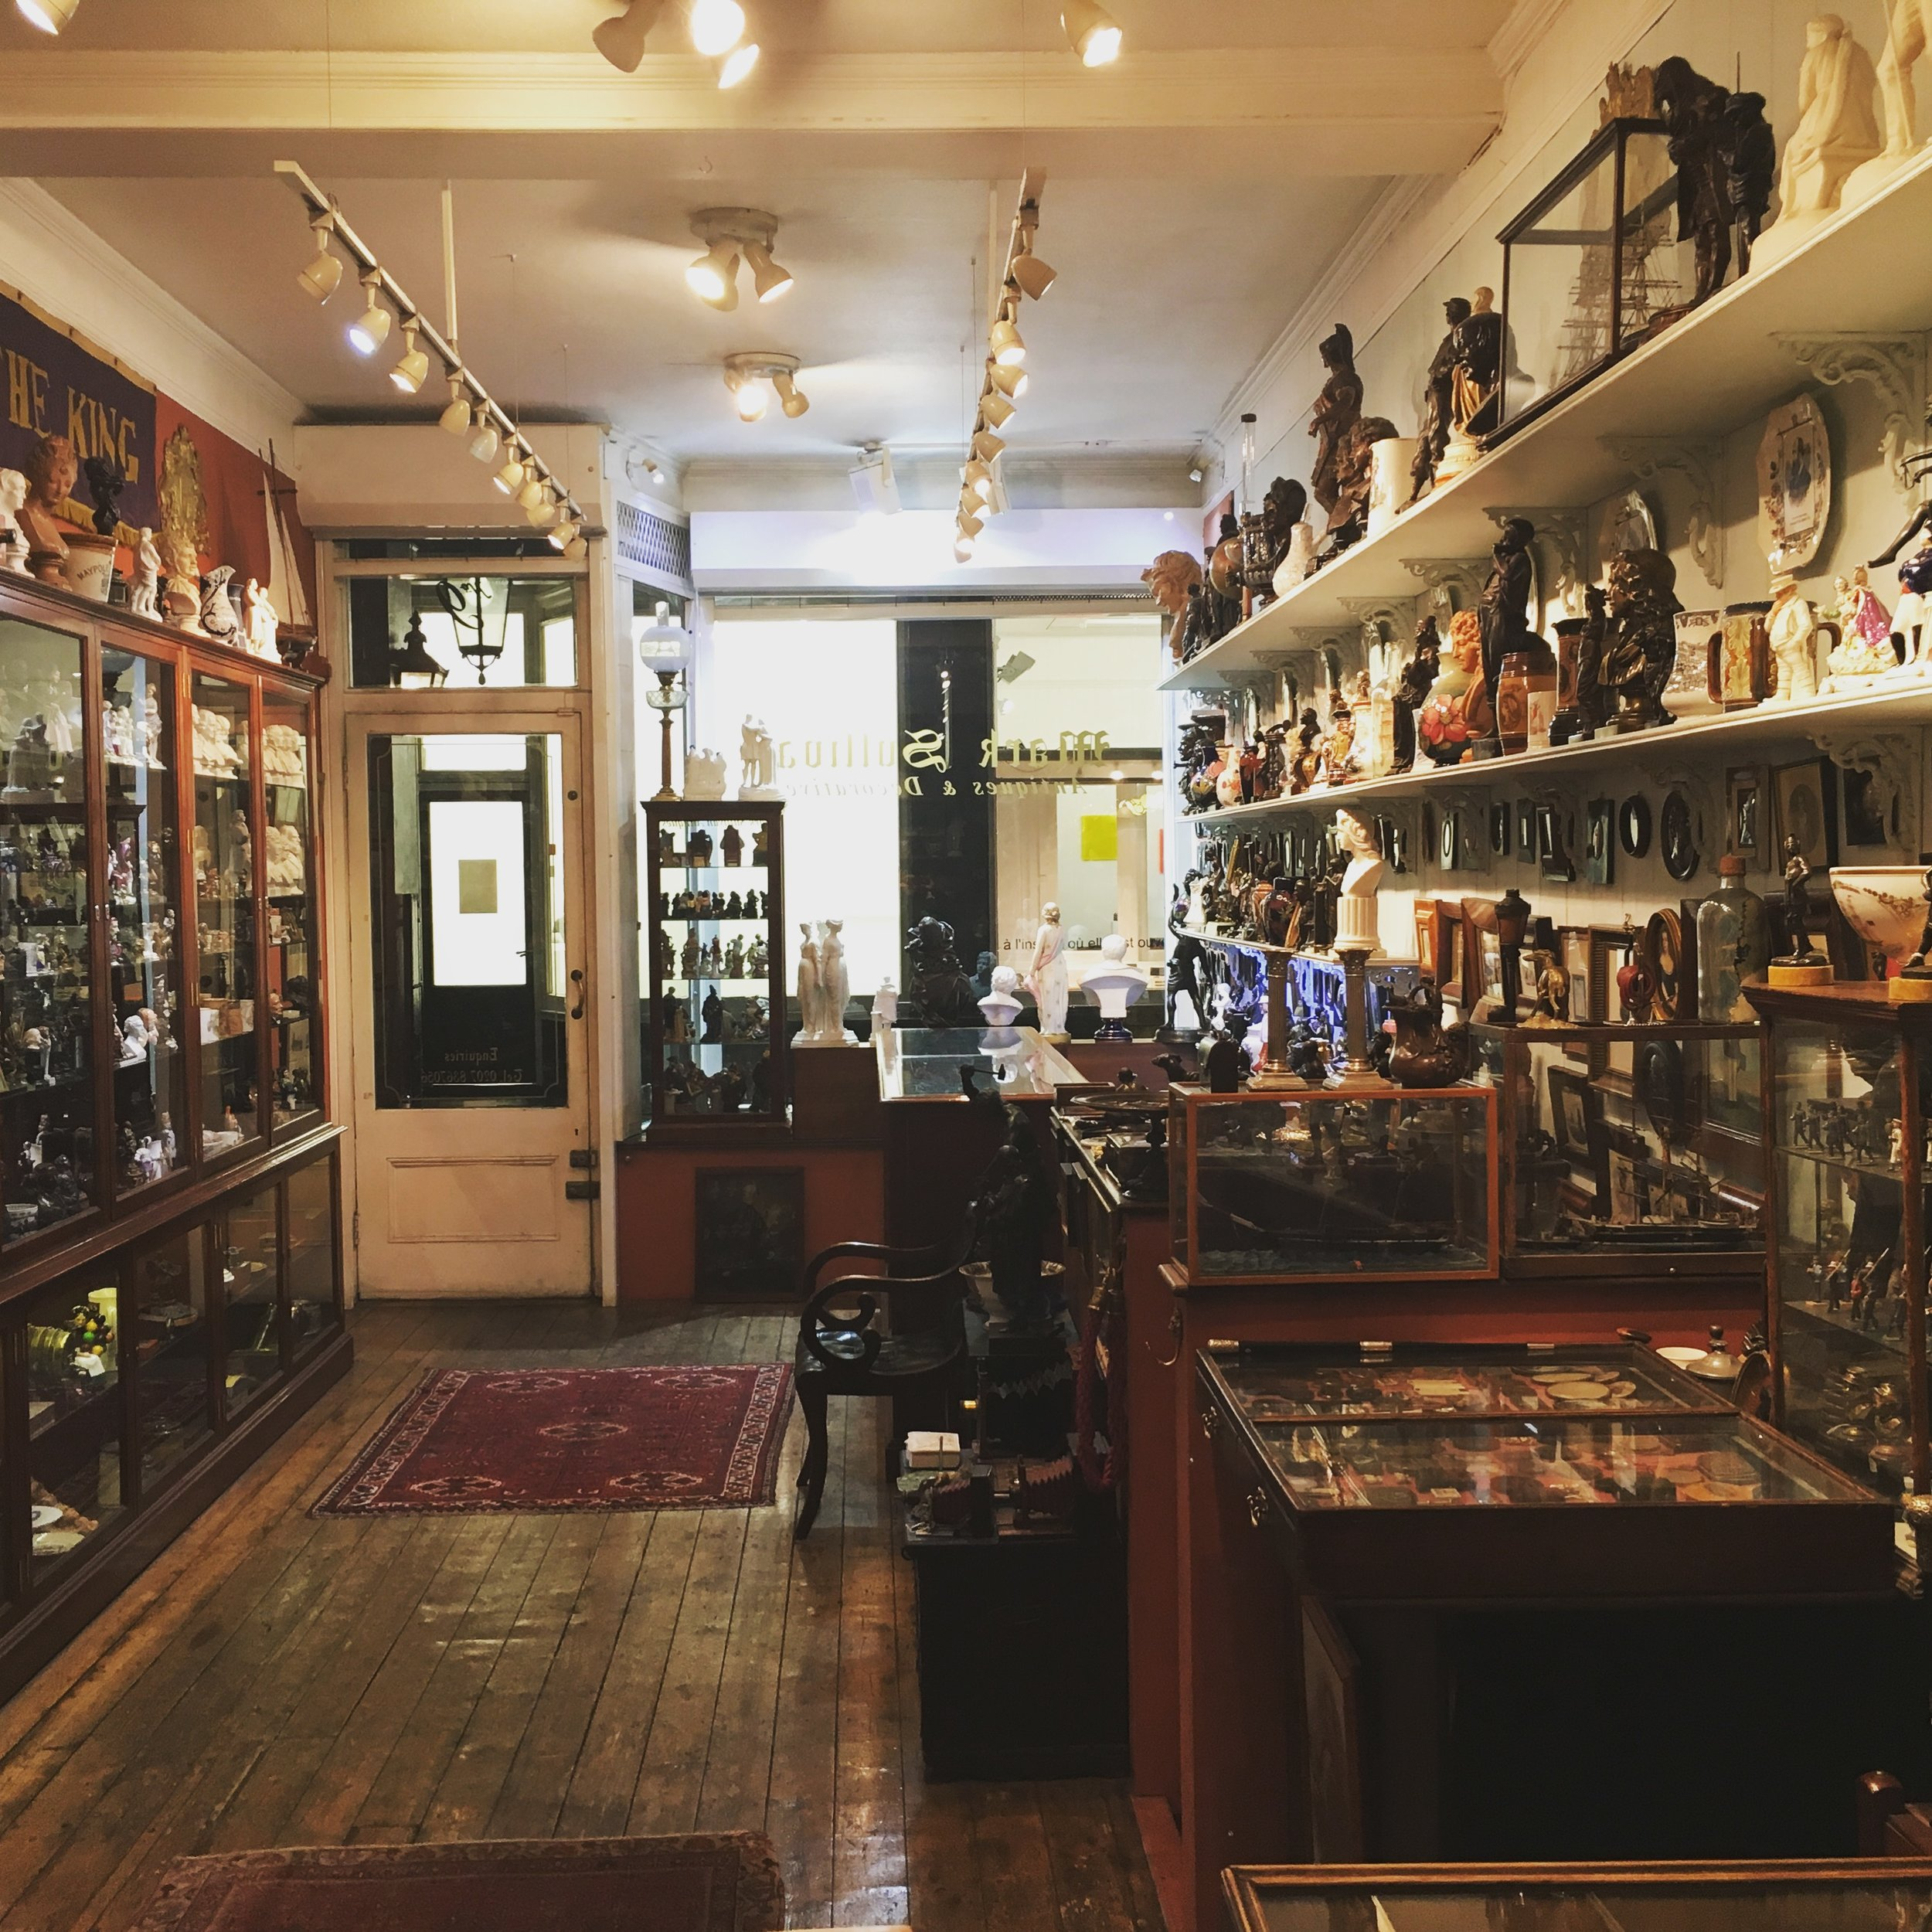 Mark Sullivan Antiques & Decoratives - Opening Hours:Monday to Sunday 10am-7pmCall: 020 7836 7056Email: mark@marksullivanantiques.com               david@marksullivanantiques.com